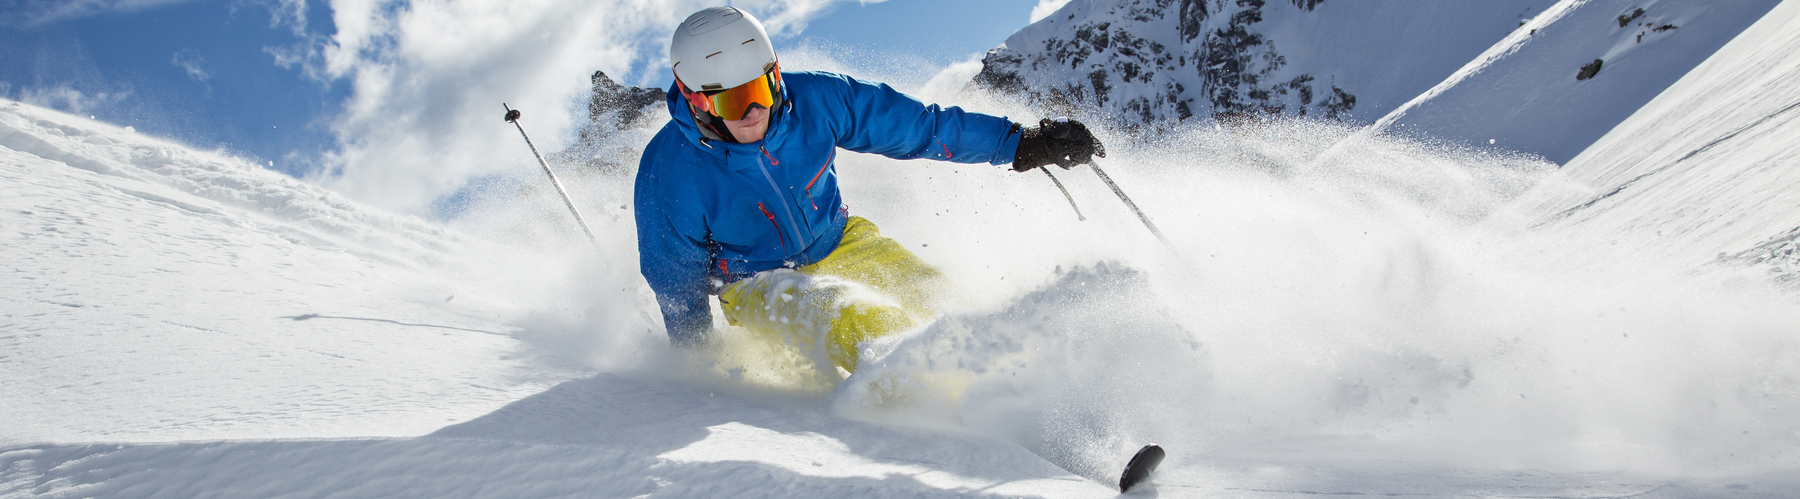 Skiing holidays from Belfast